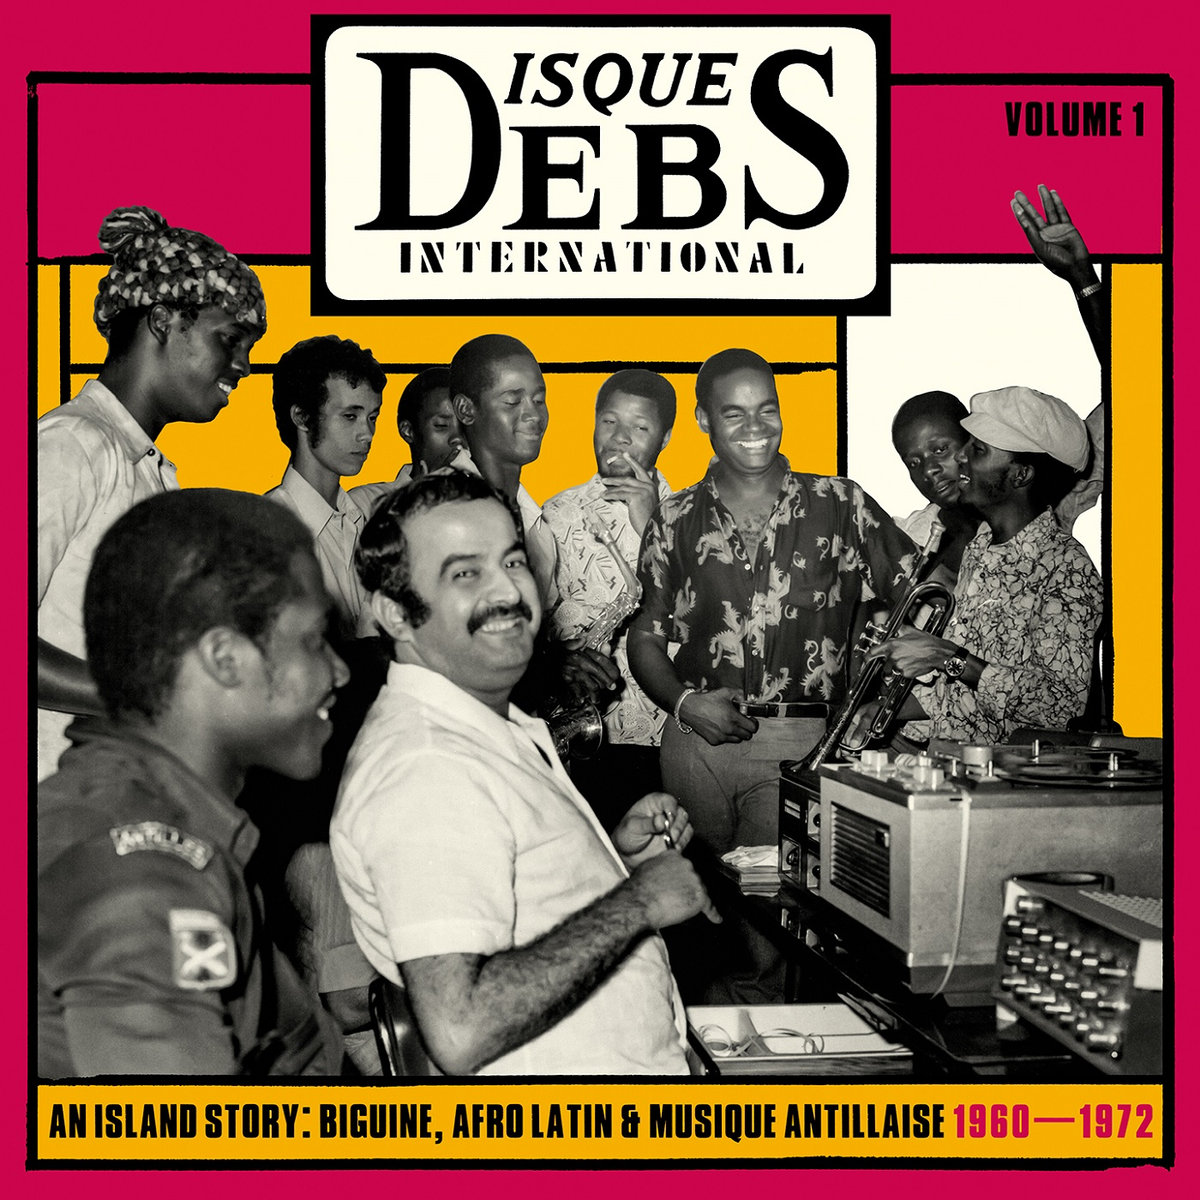 Disque Debs International vol. 1